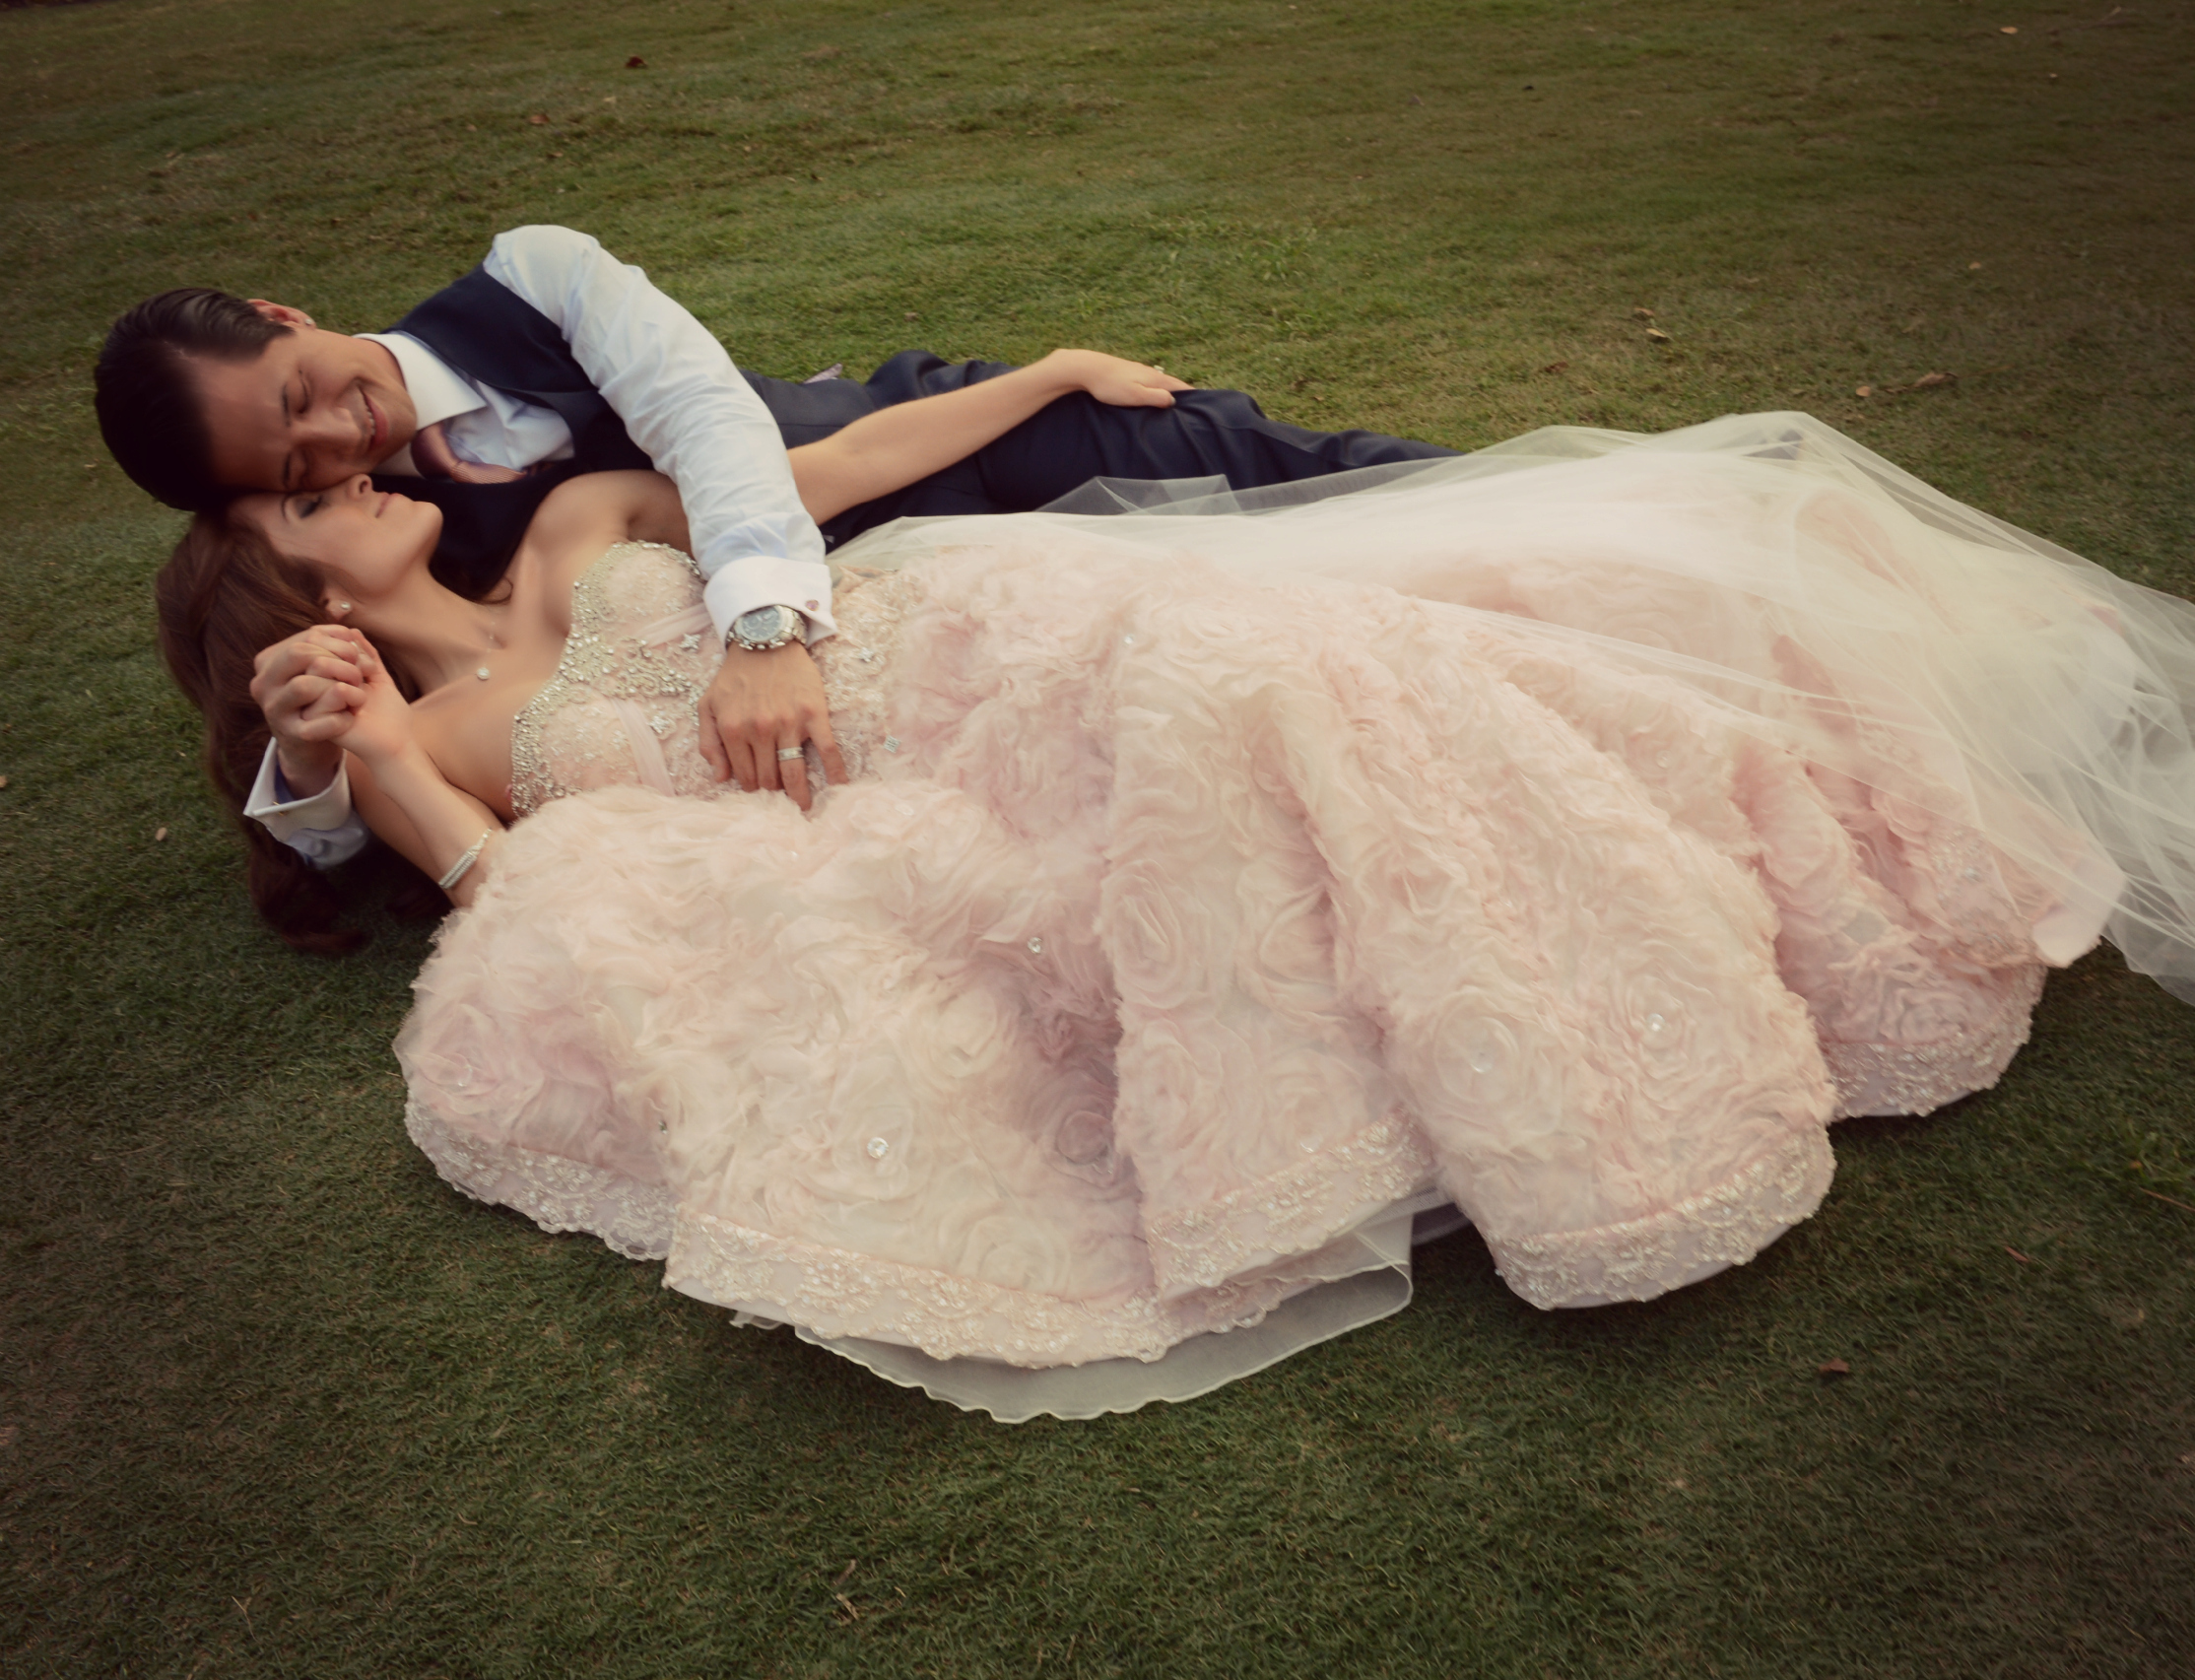 Wedding Dresses, Fashion, pink, dress, Gown, Train, Wedding, Kiss, Couple, Picture, Persephone eddie, Pink wedding dress